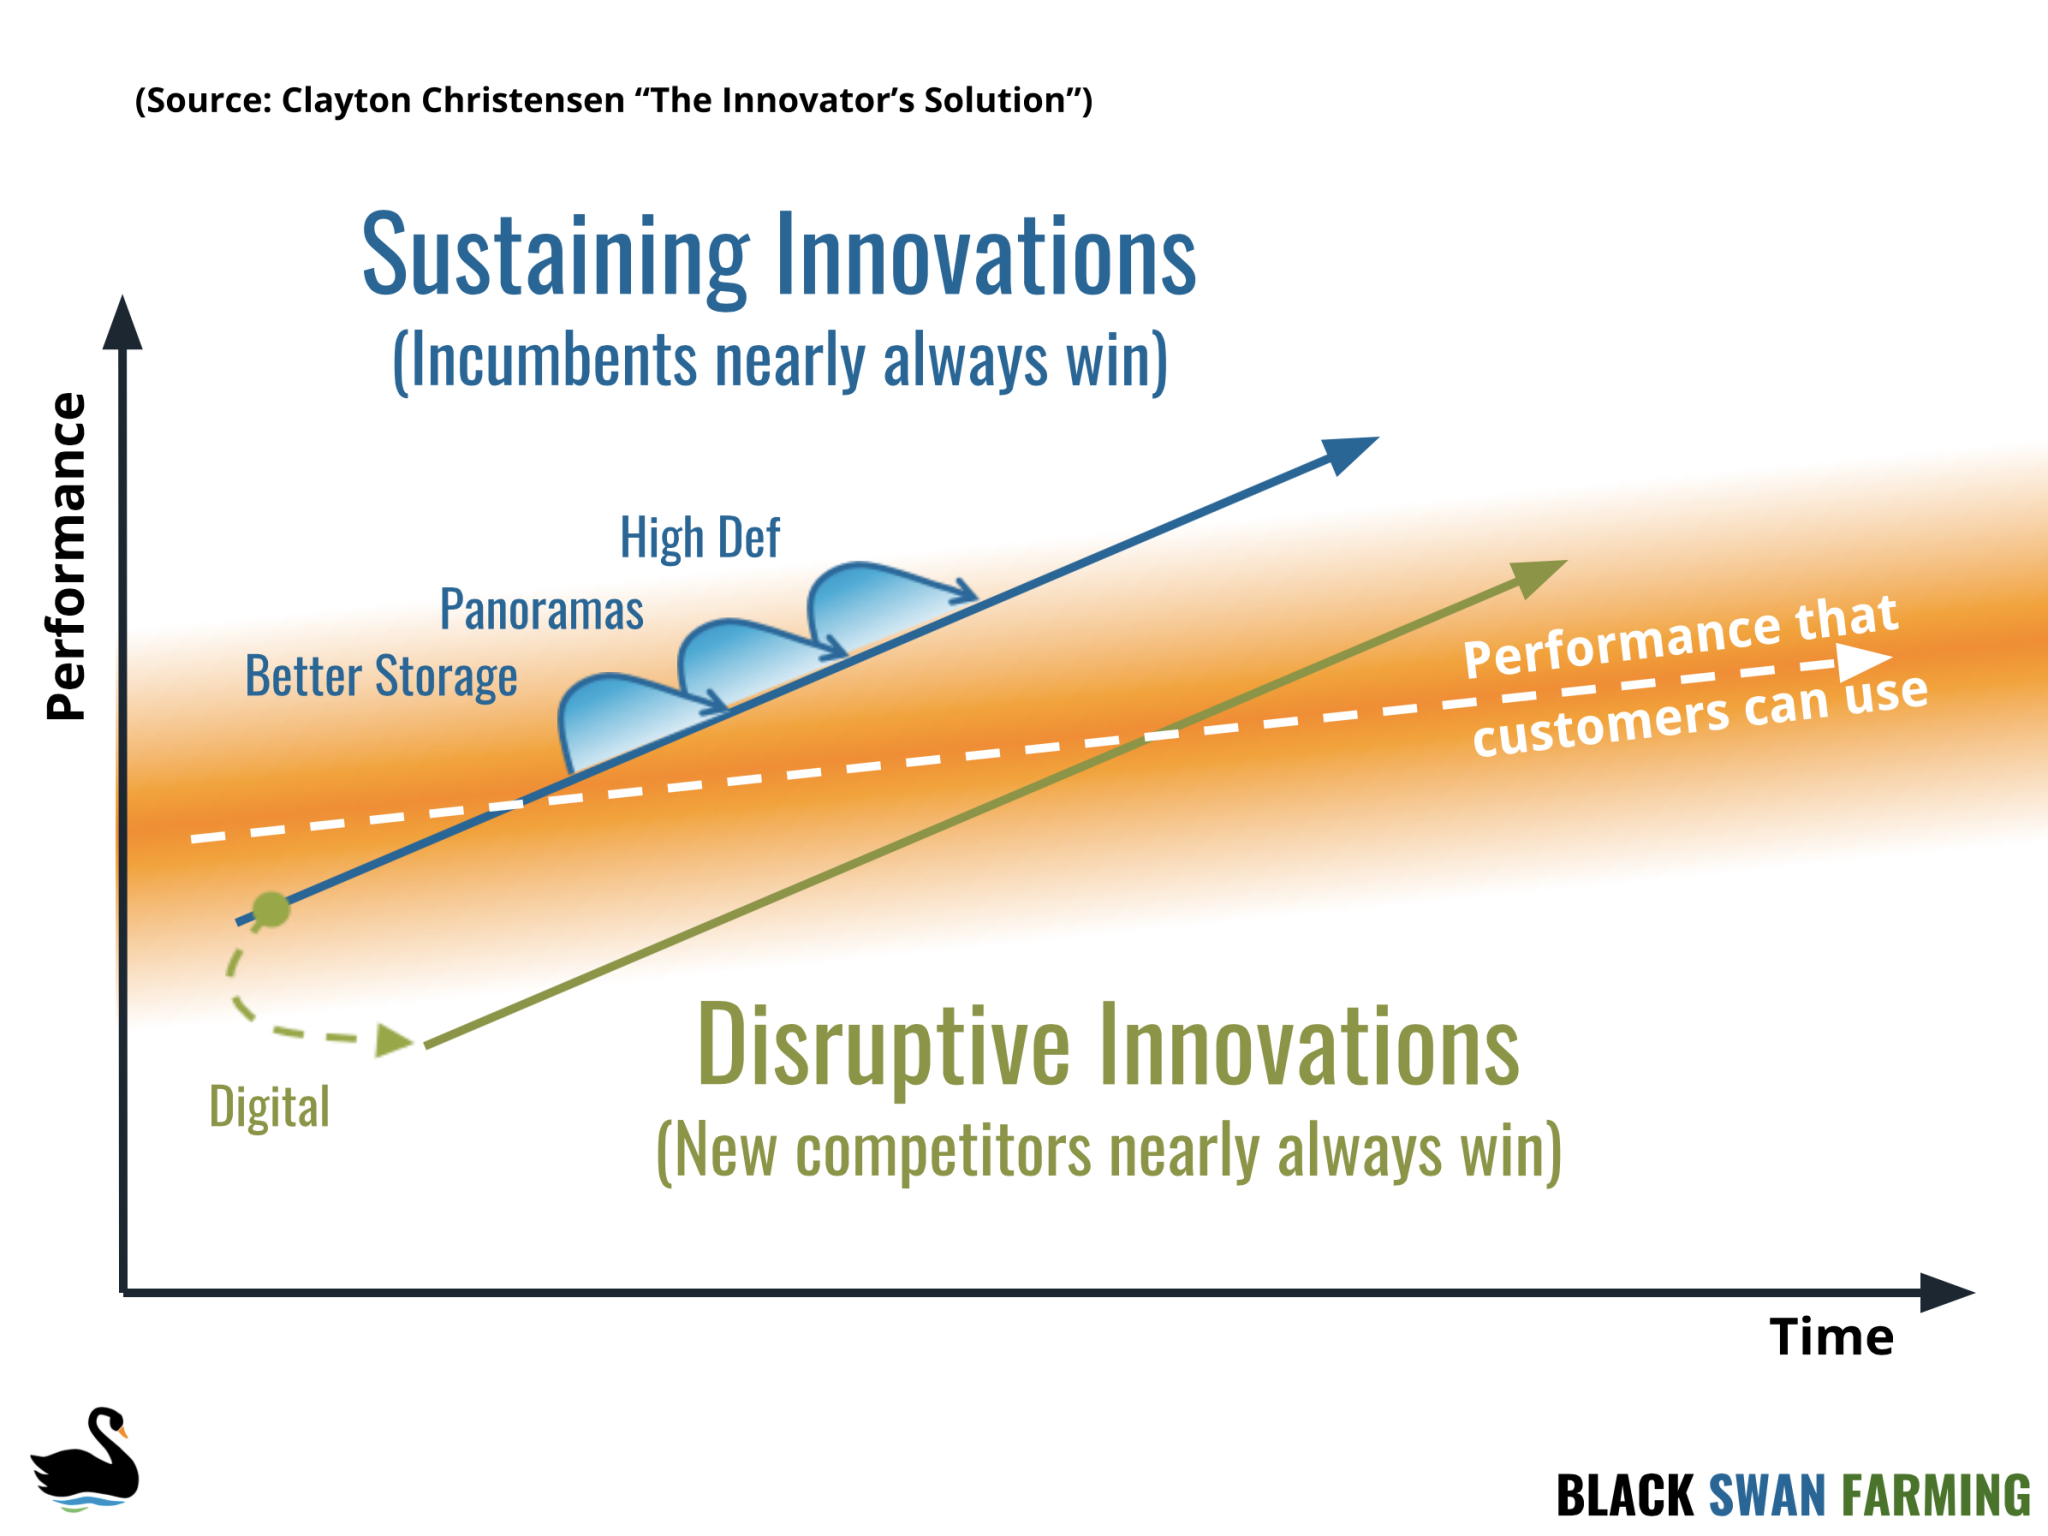 Over time sustaining innovation over serves, leaving room for new technologies disruptive innovations to win